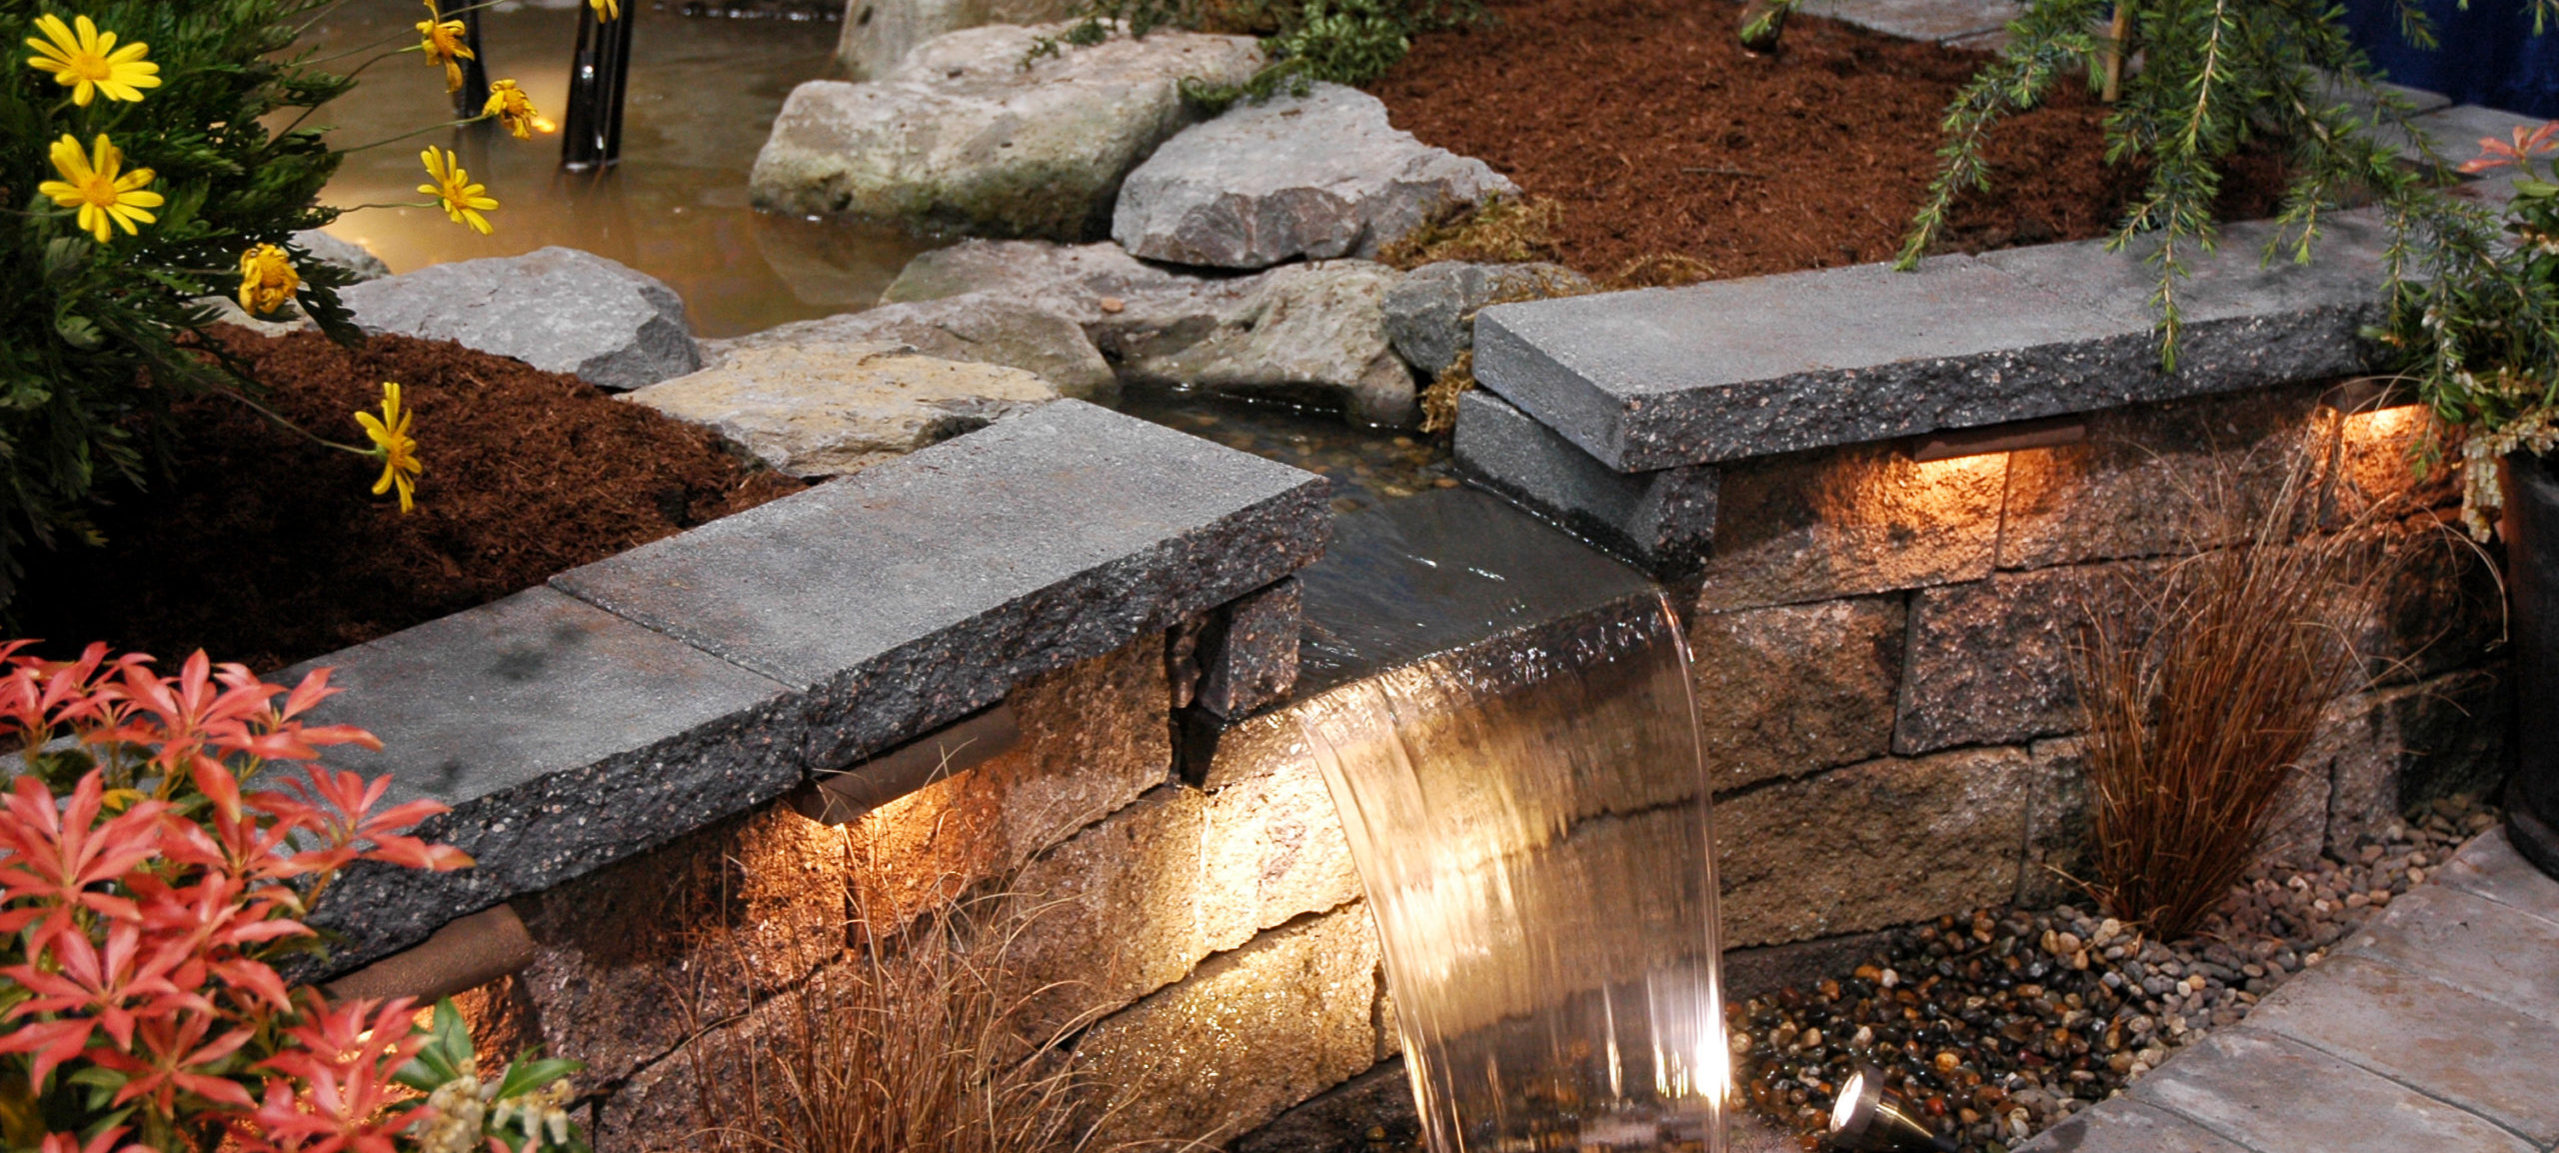 salt-lake-city-water-feature-ideas